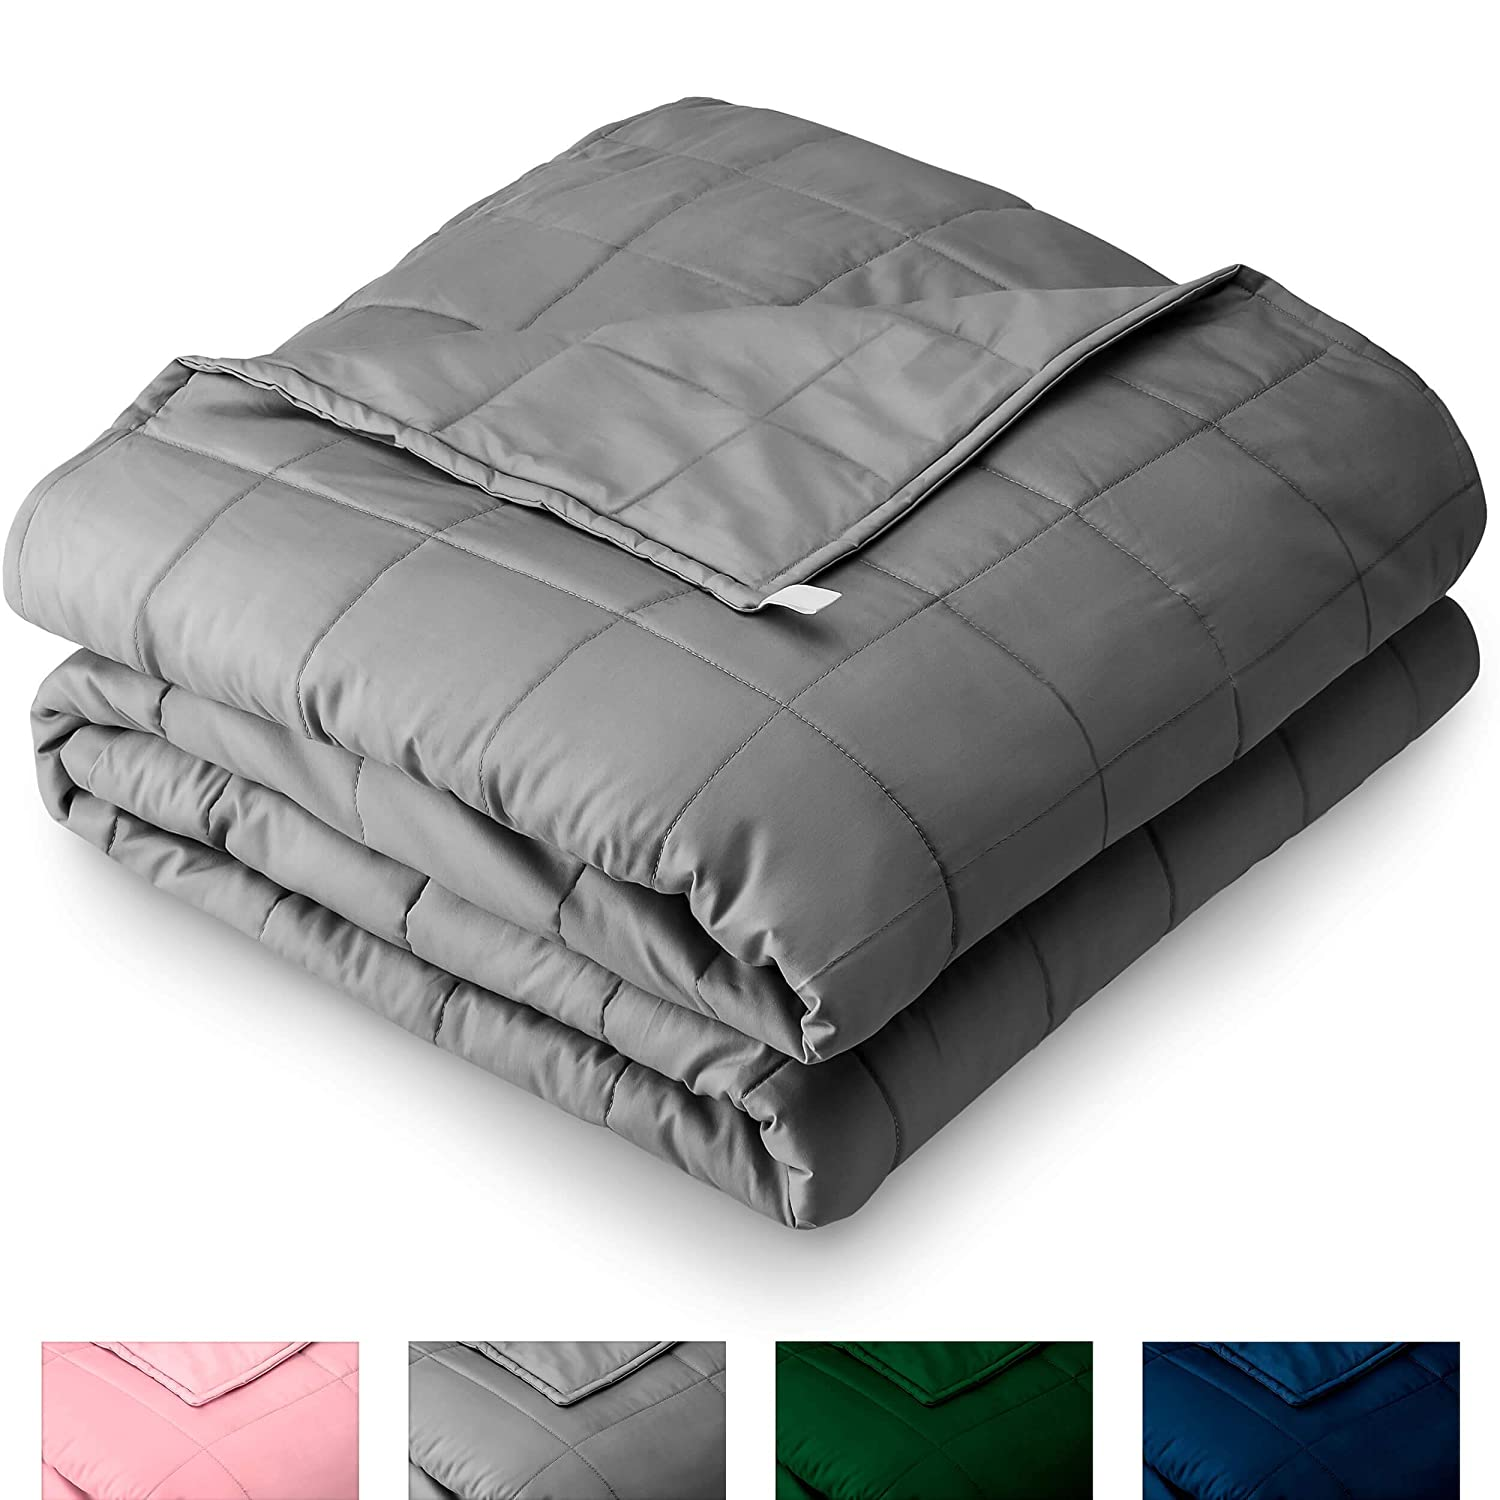 "Bare Home Weighted Blanket for Adults 25lb (80"" x 87"") - All-Natural 100% Cotton - Premium Heavy Blanket Nontoxic Glass Beads (Grey, 80""x87"")"